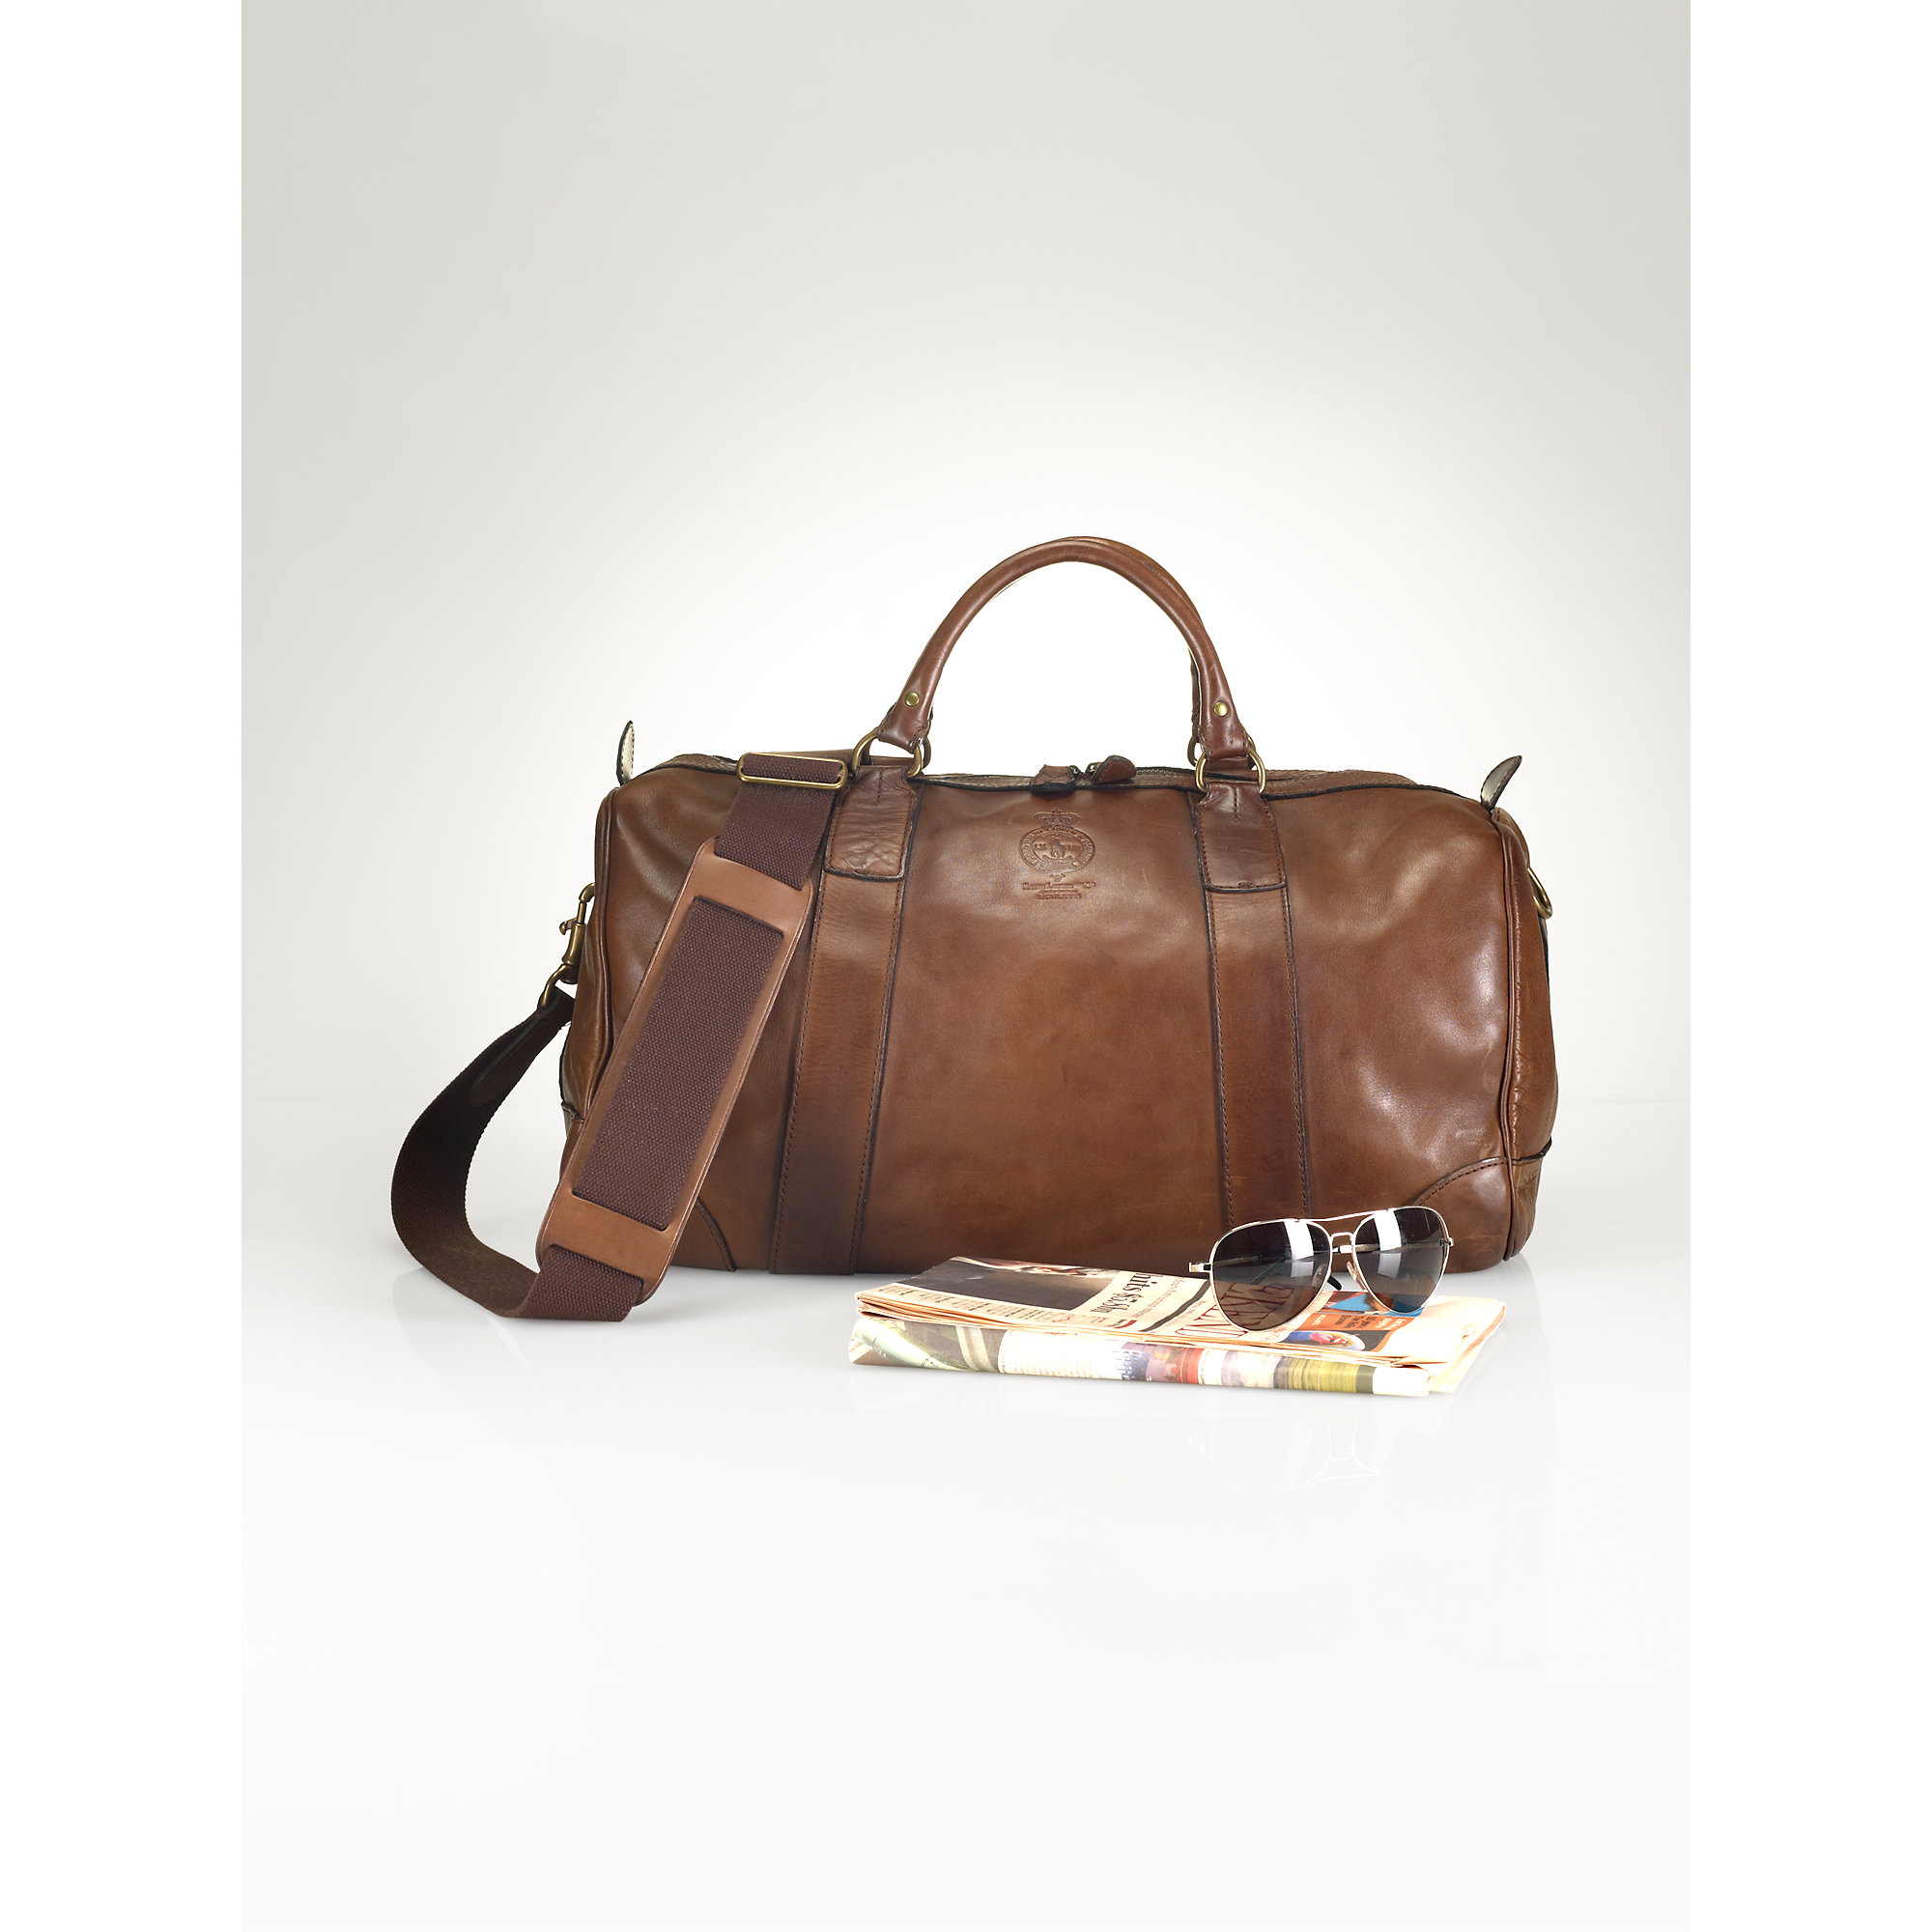 570e957c11 Lyst - Ralph Lauren Leather Duffel Bag in Brown for Men